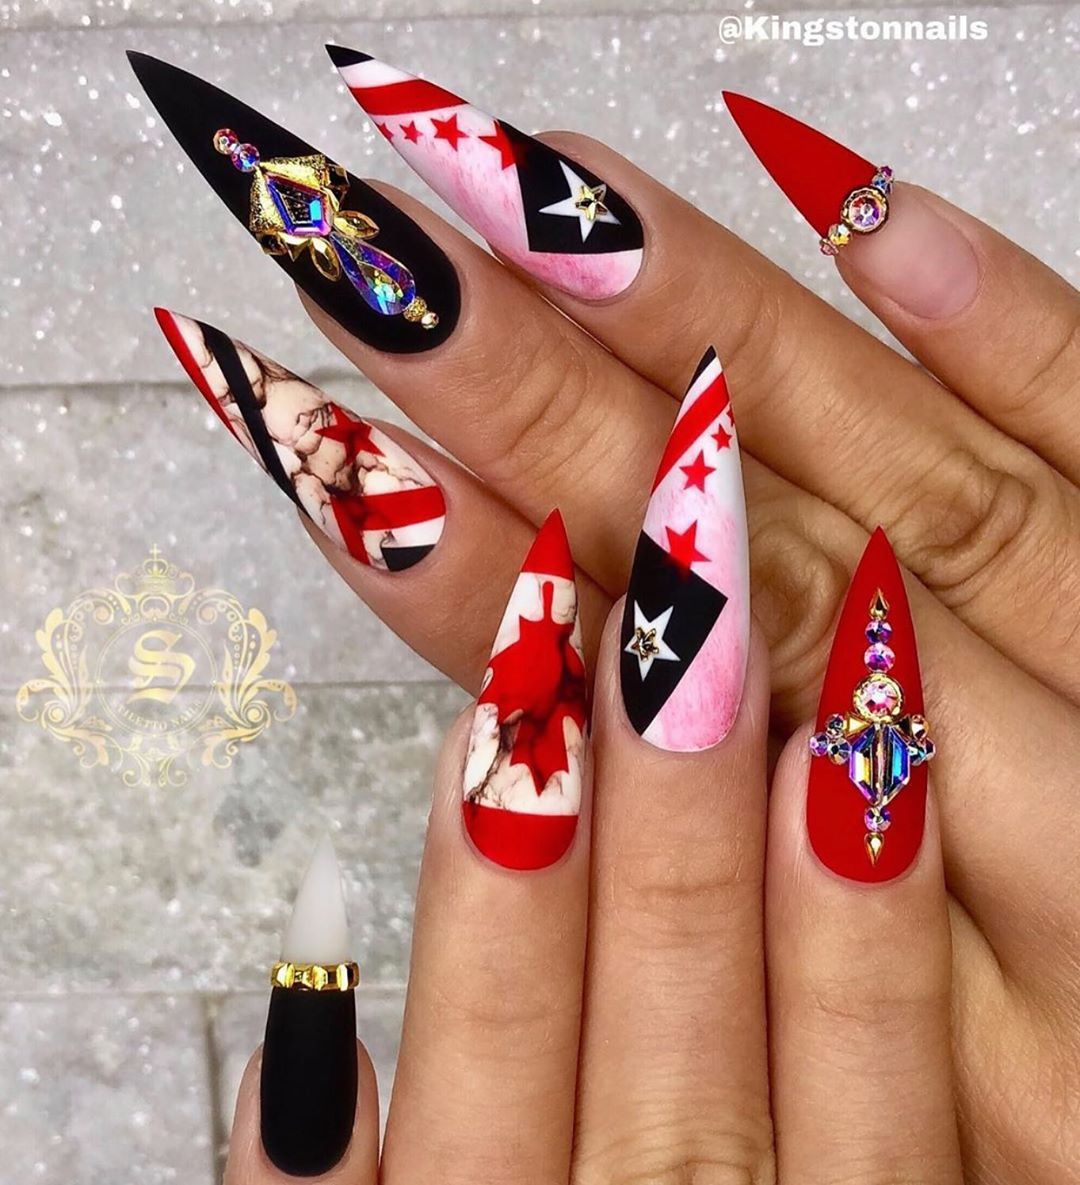 Top 5 Nail Art Tips For Beginners Expert Advice: The 30 Hottest Nail Designs Trends For Autumo 2019